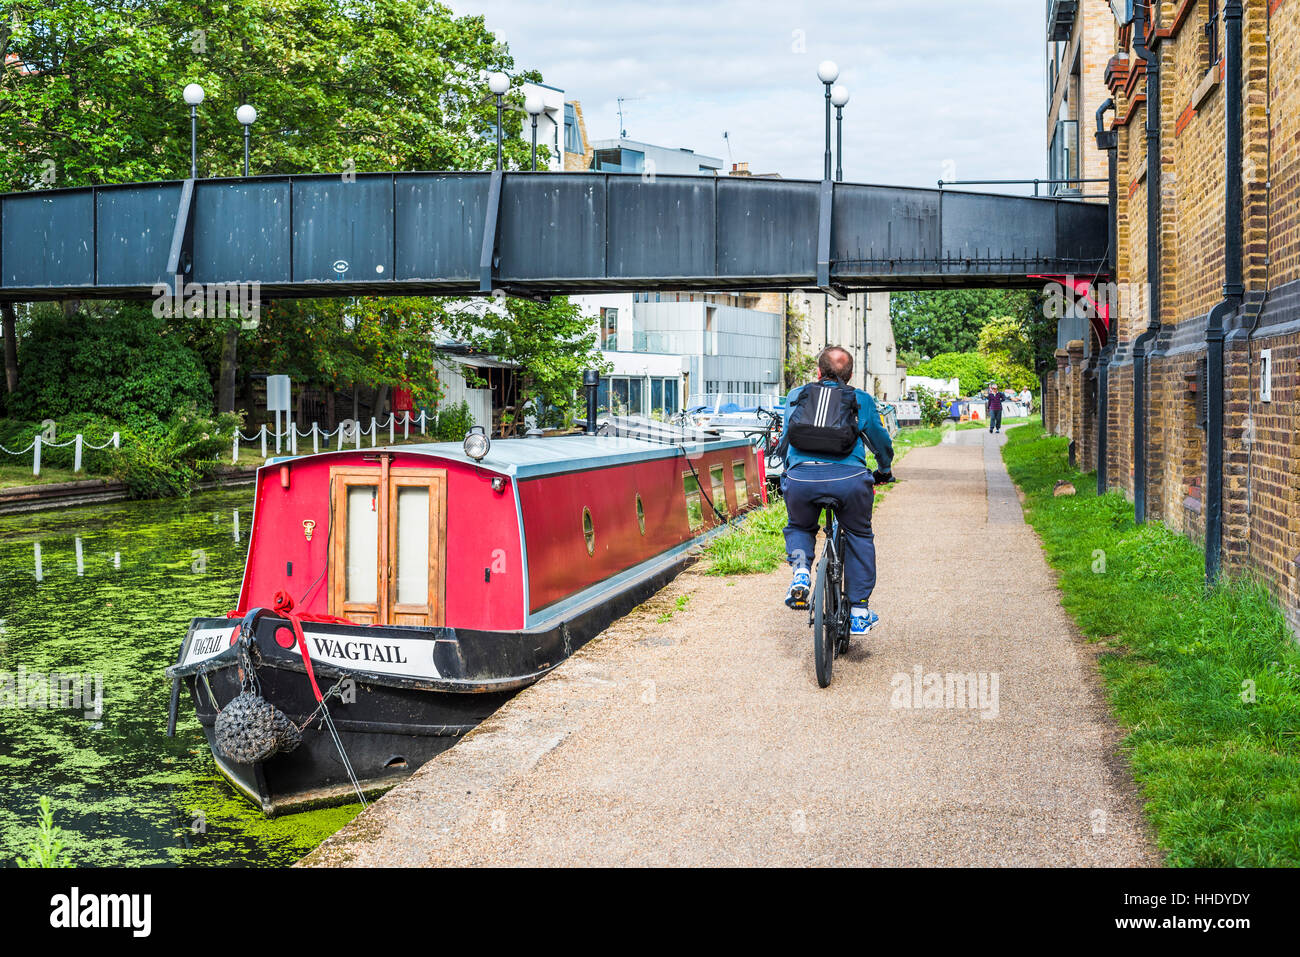 Cycling by the Canal at Ladbroke Grove in the Royal Borough of Kensington and Chelsea, London, UK Stock Photo